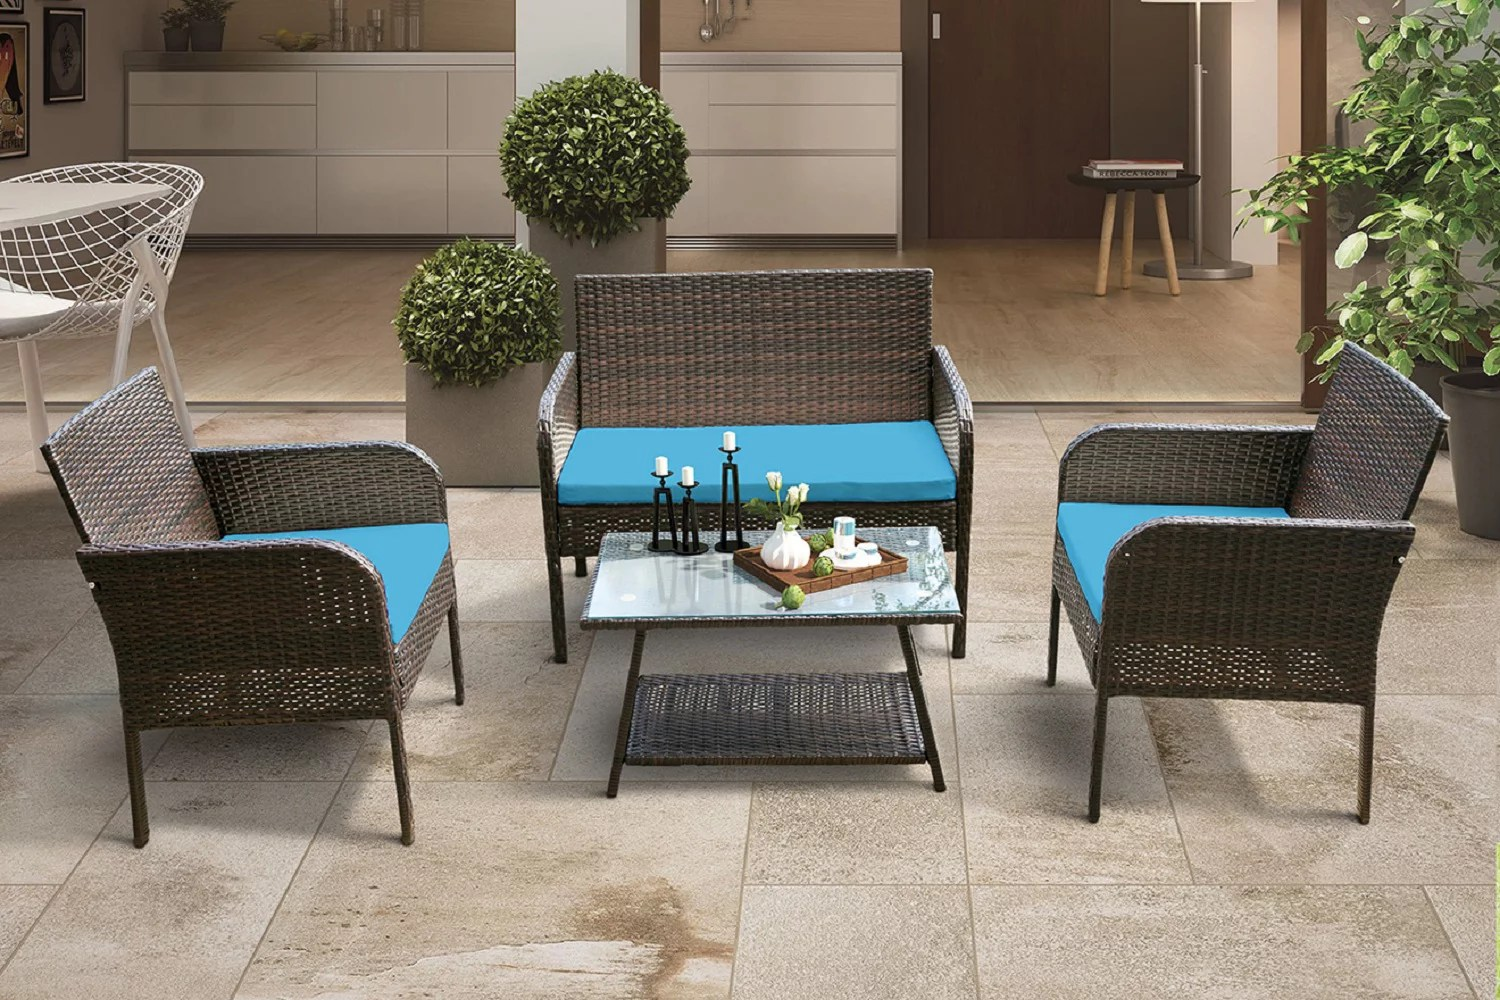 patio furniture sets on sale 4 piece wicker patio conversation furniture set w loveseat seats 2 armchair sofas coffee dining table and padded